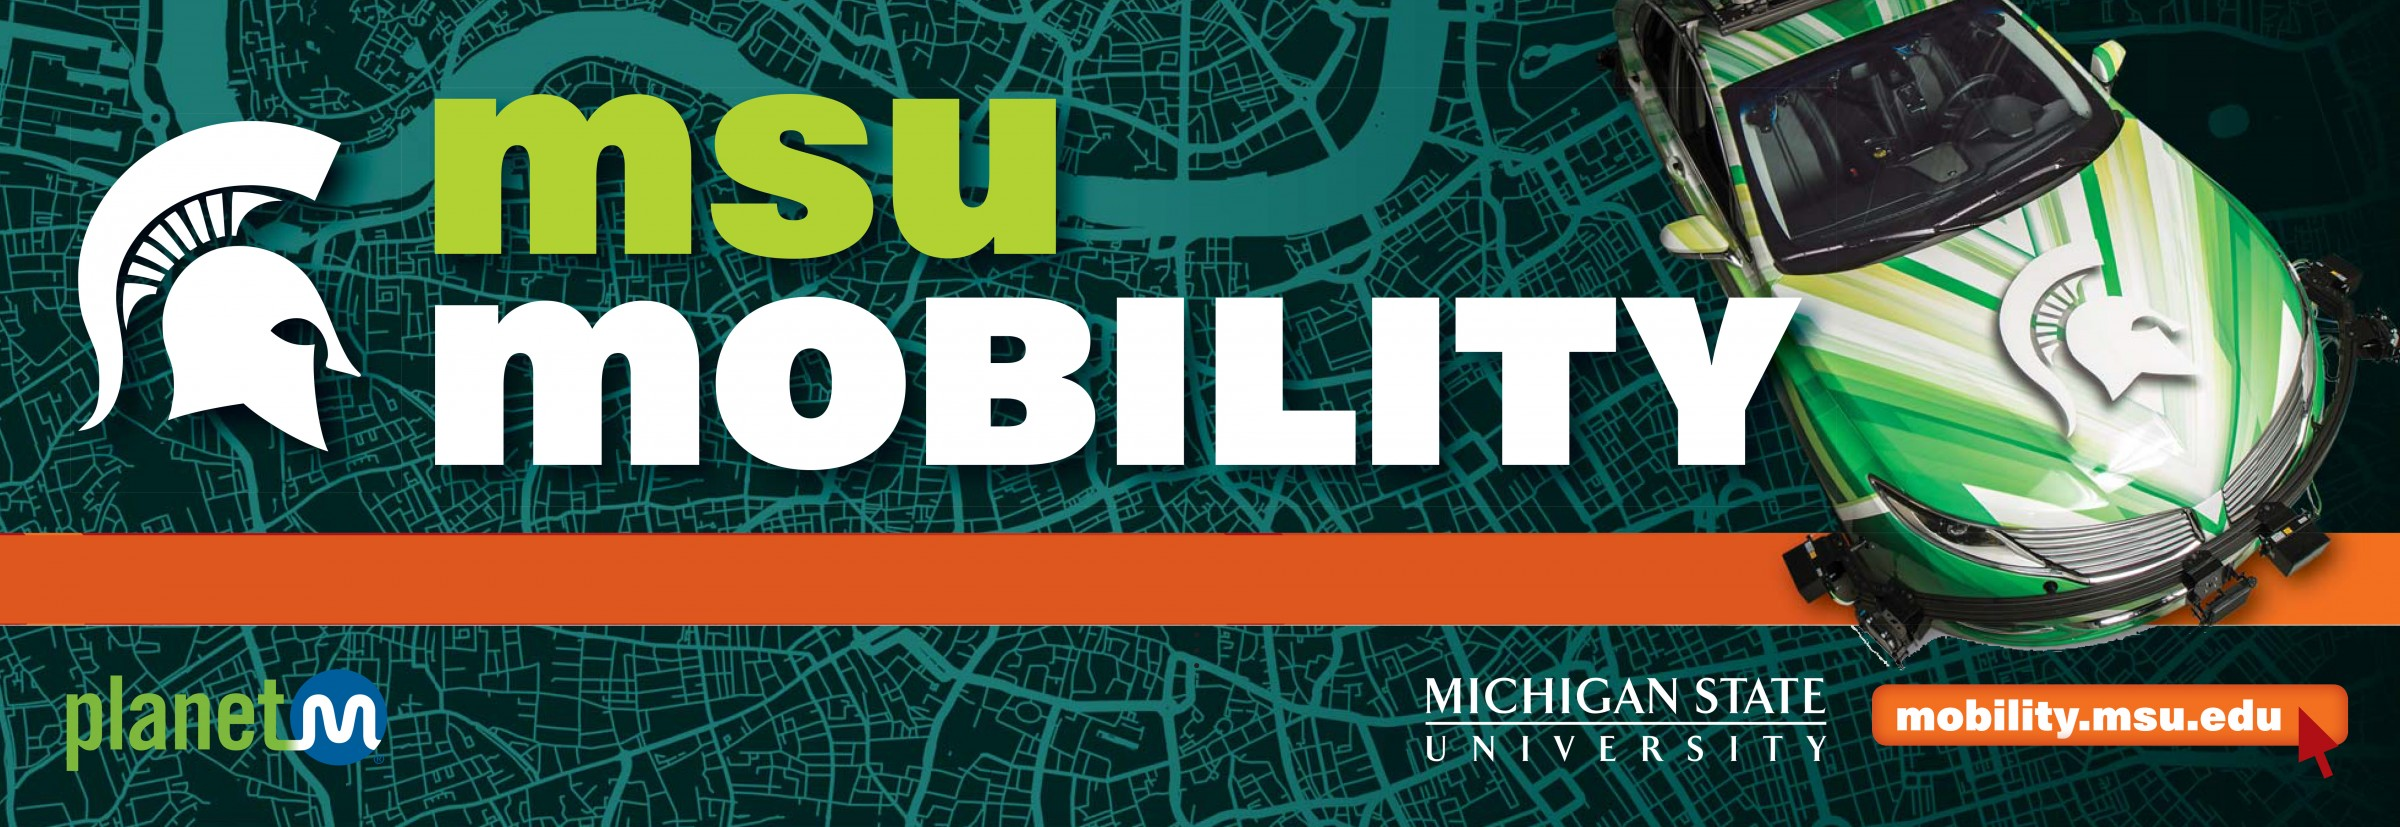 MSU will offer new mobility solutions during AutoMobili-D at Detroit's Cobo Center, Jan. 14-17.